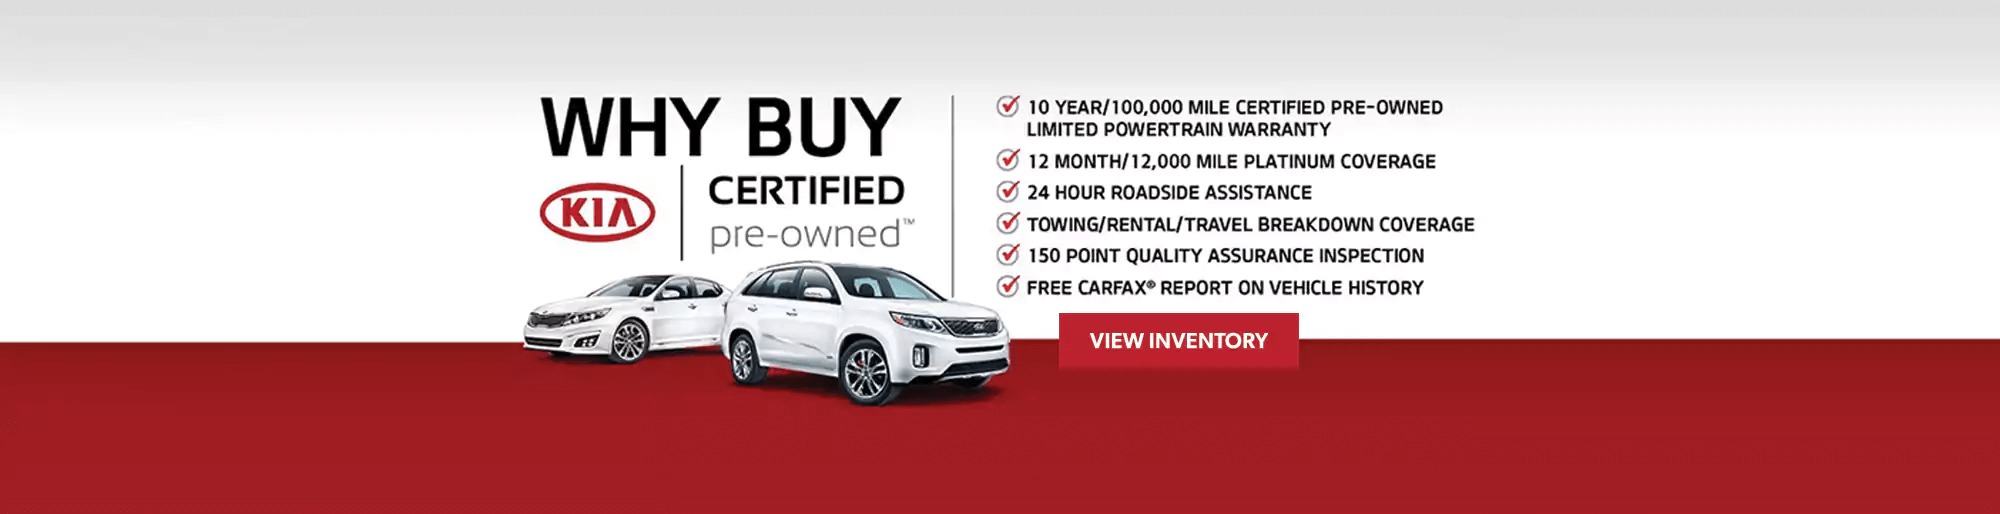 Kia Certified Preowned Used Benefits